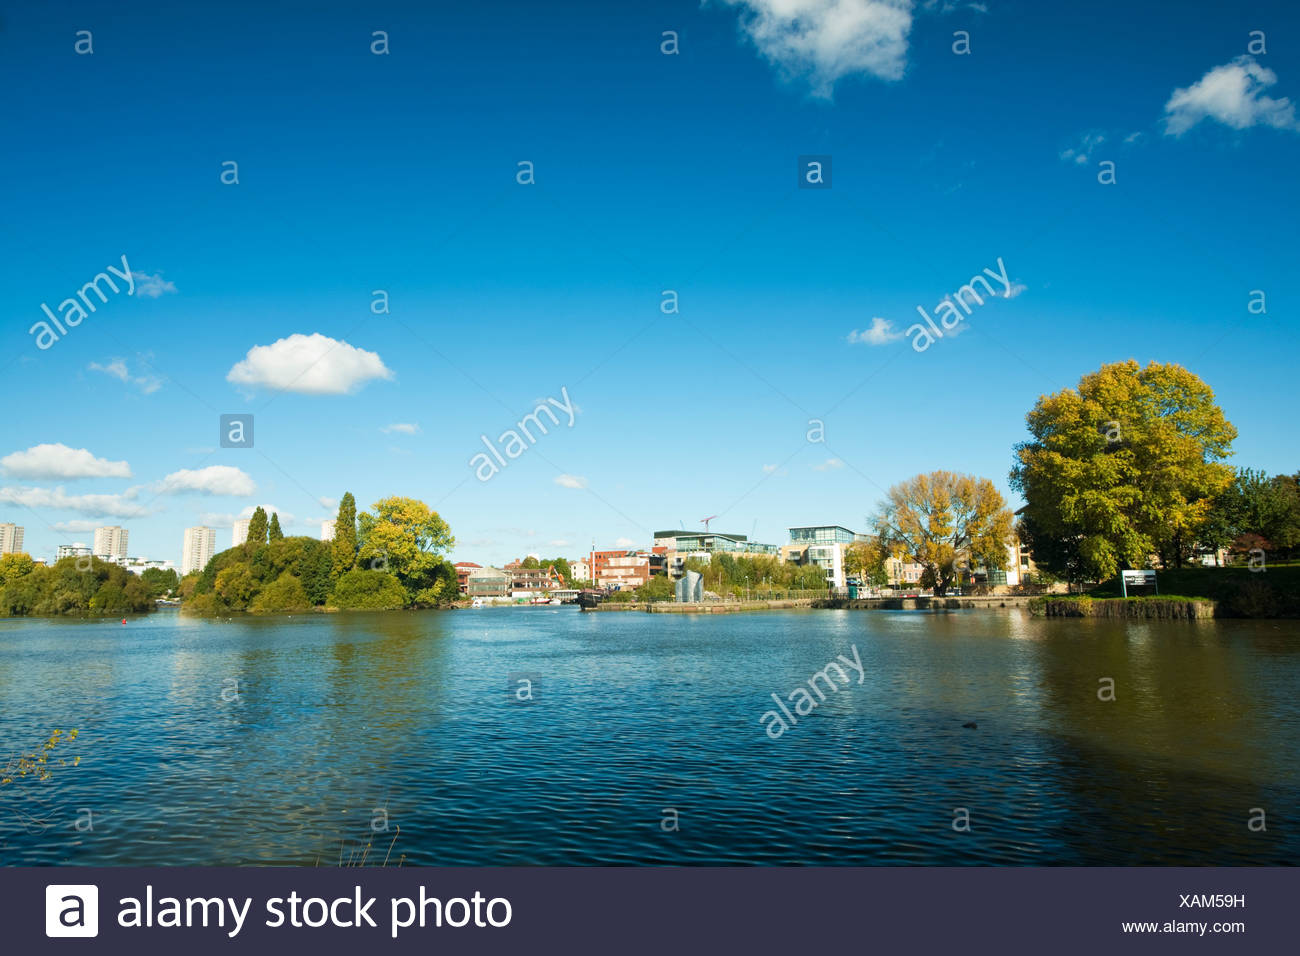 Marina at the confluence of the River Brent with The Thames at Kew, London, Uk - Stock Image